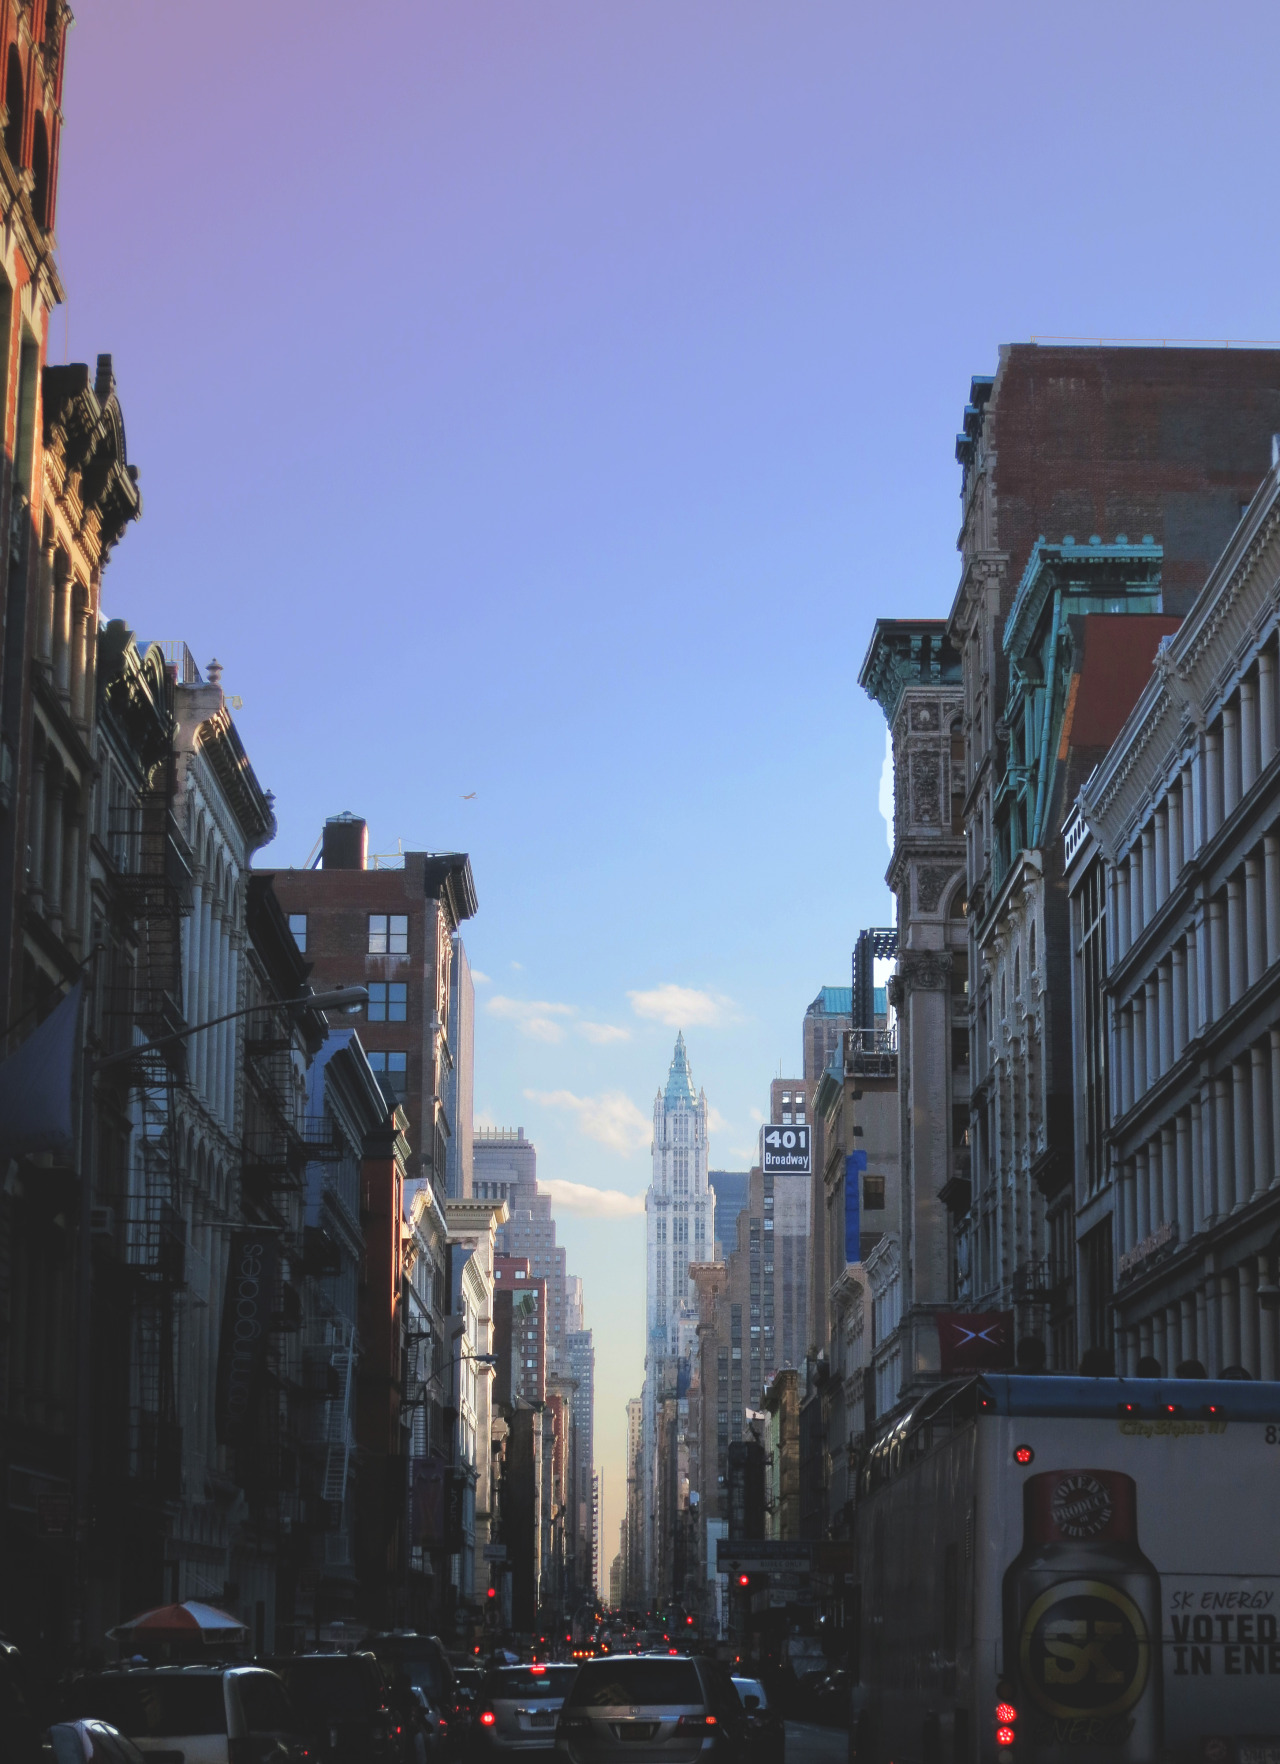 a view from soho, taken in new york by me I've recently entered this picture for the Canon EOS Young Photographers award! Please vote for me here - there's no sign in required, just click the vote button and change my life (and let me know, and I can promo you to tens of thousands of followers!)